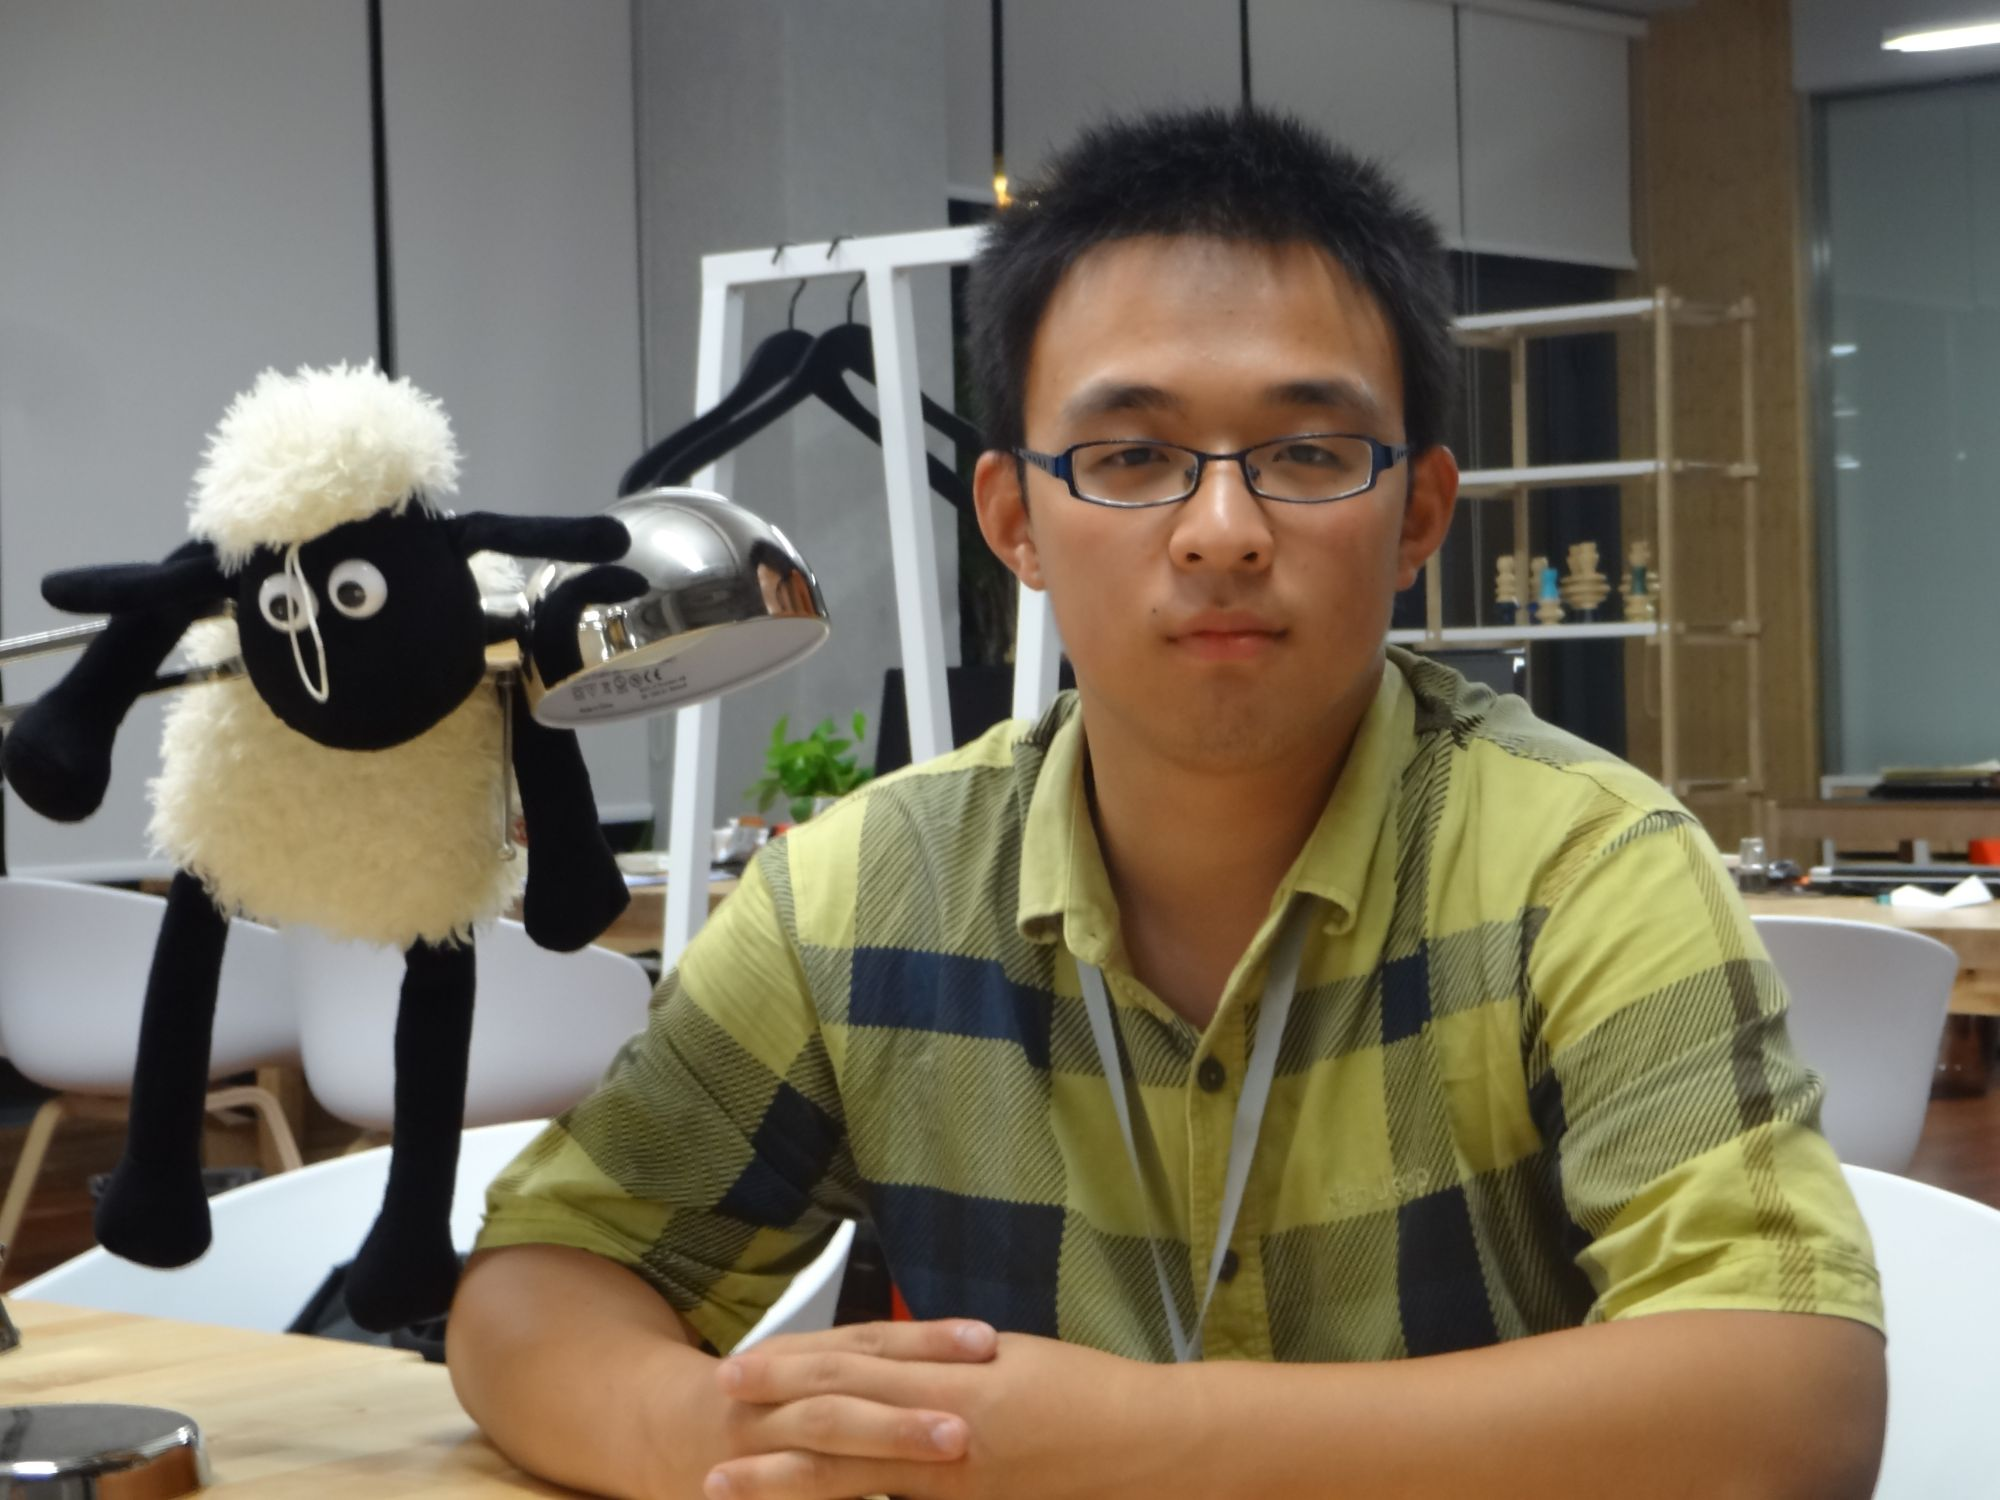 Chen Su Graduating in 2016: Hope To Improve Living Environment with Chemistry